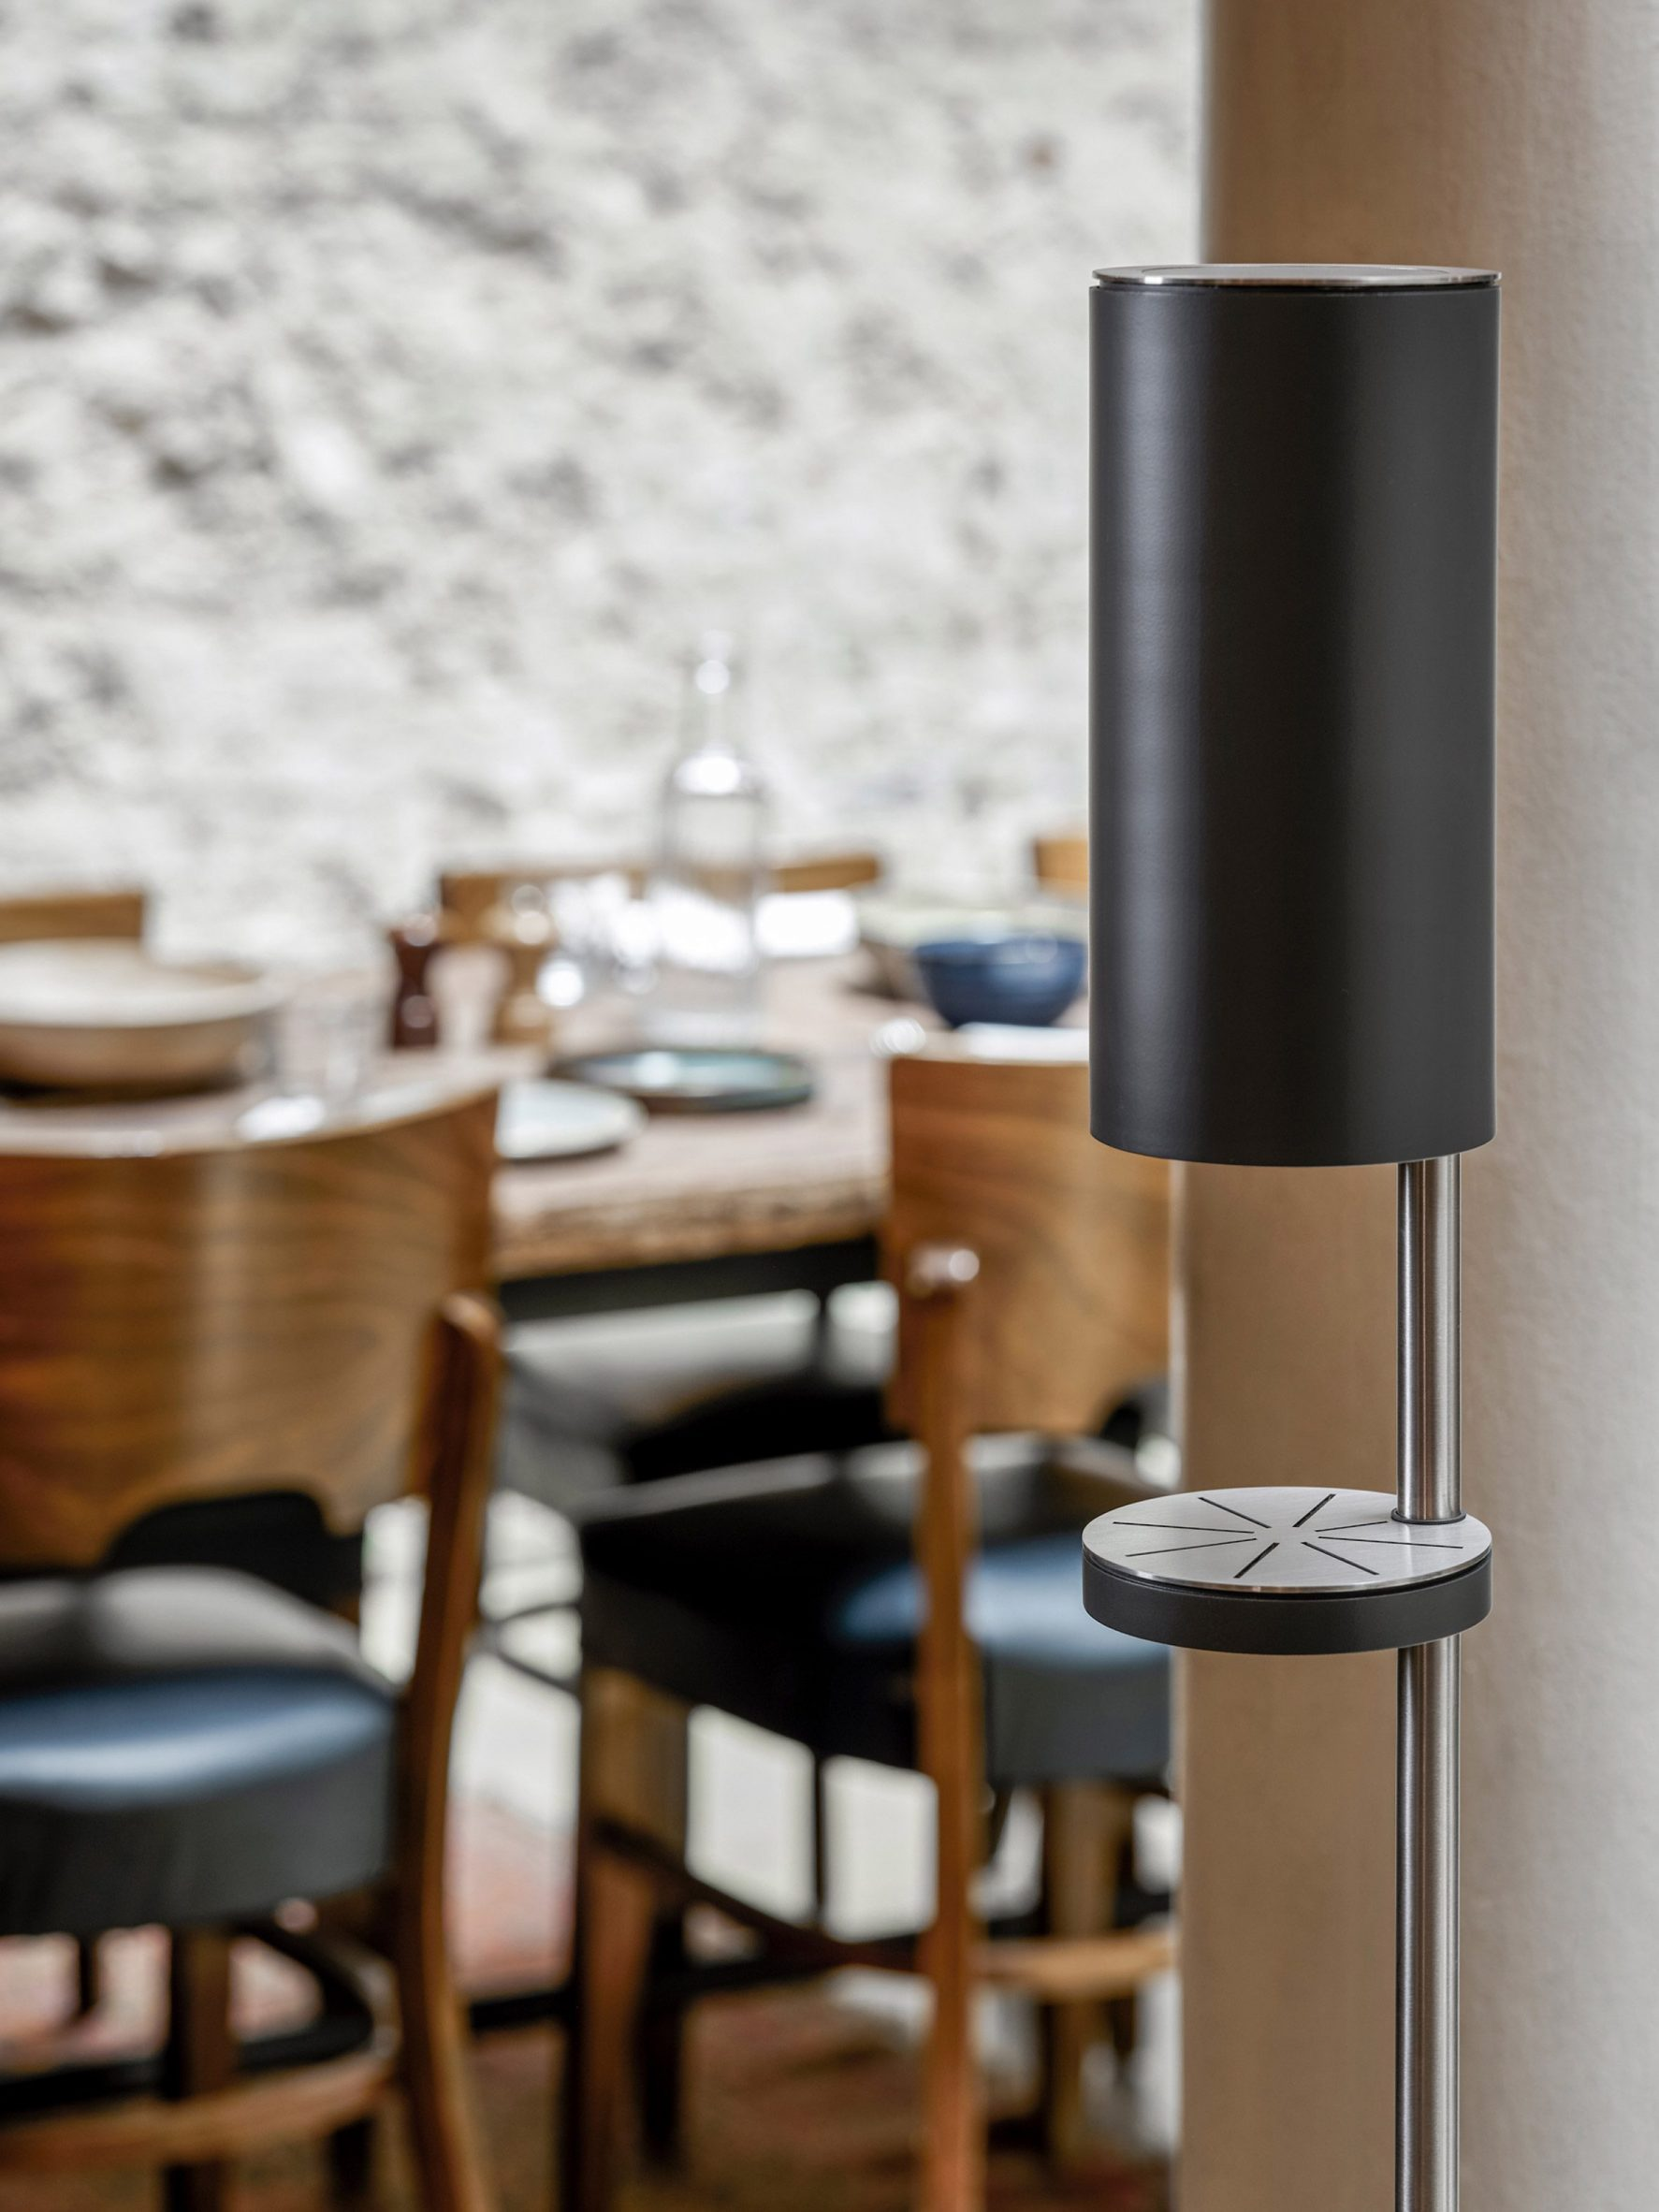 A photograph of the RS11 freestanding hand sanitiser dispenser by Link Arkitecktur for Vola